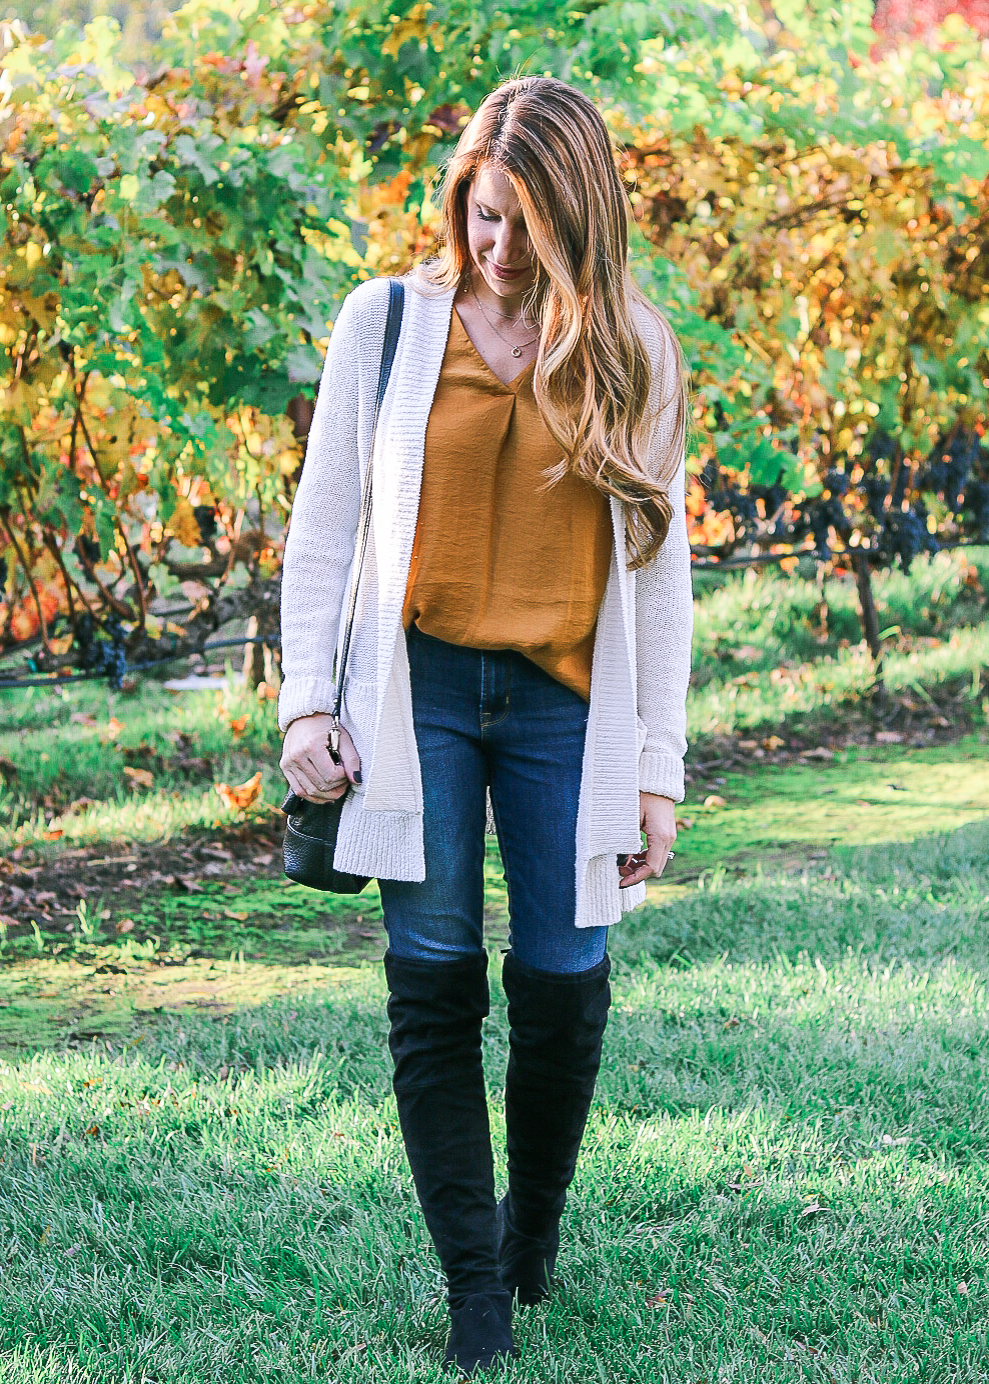 Color Combo I Love: Mustard, Cream, & Black